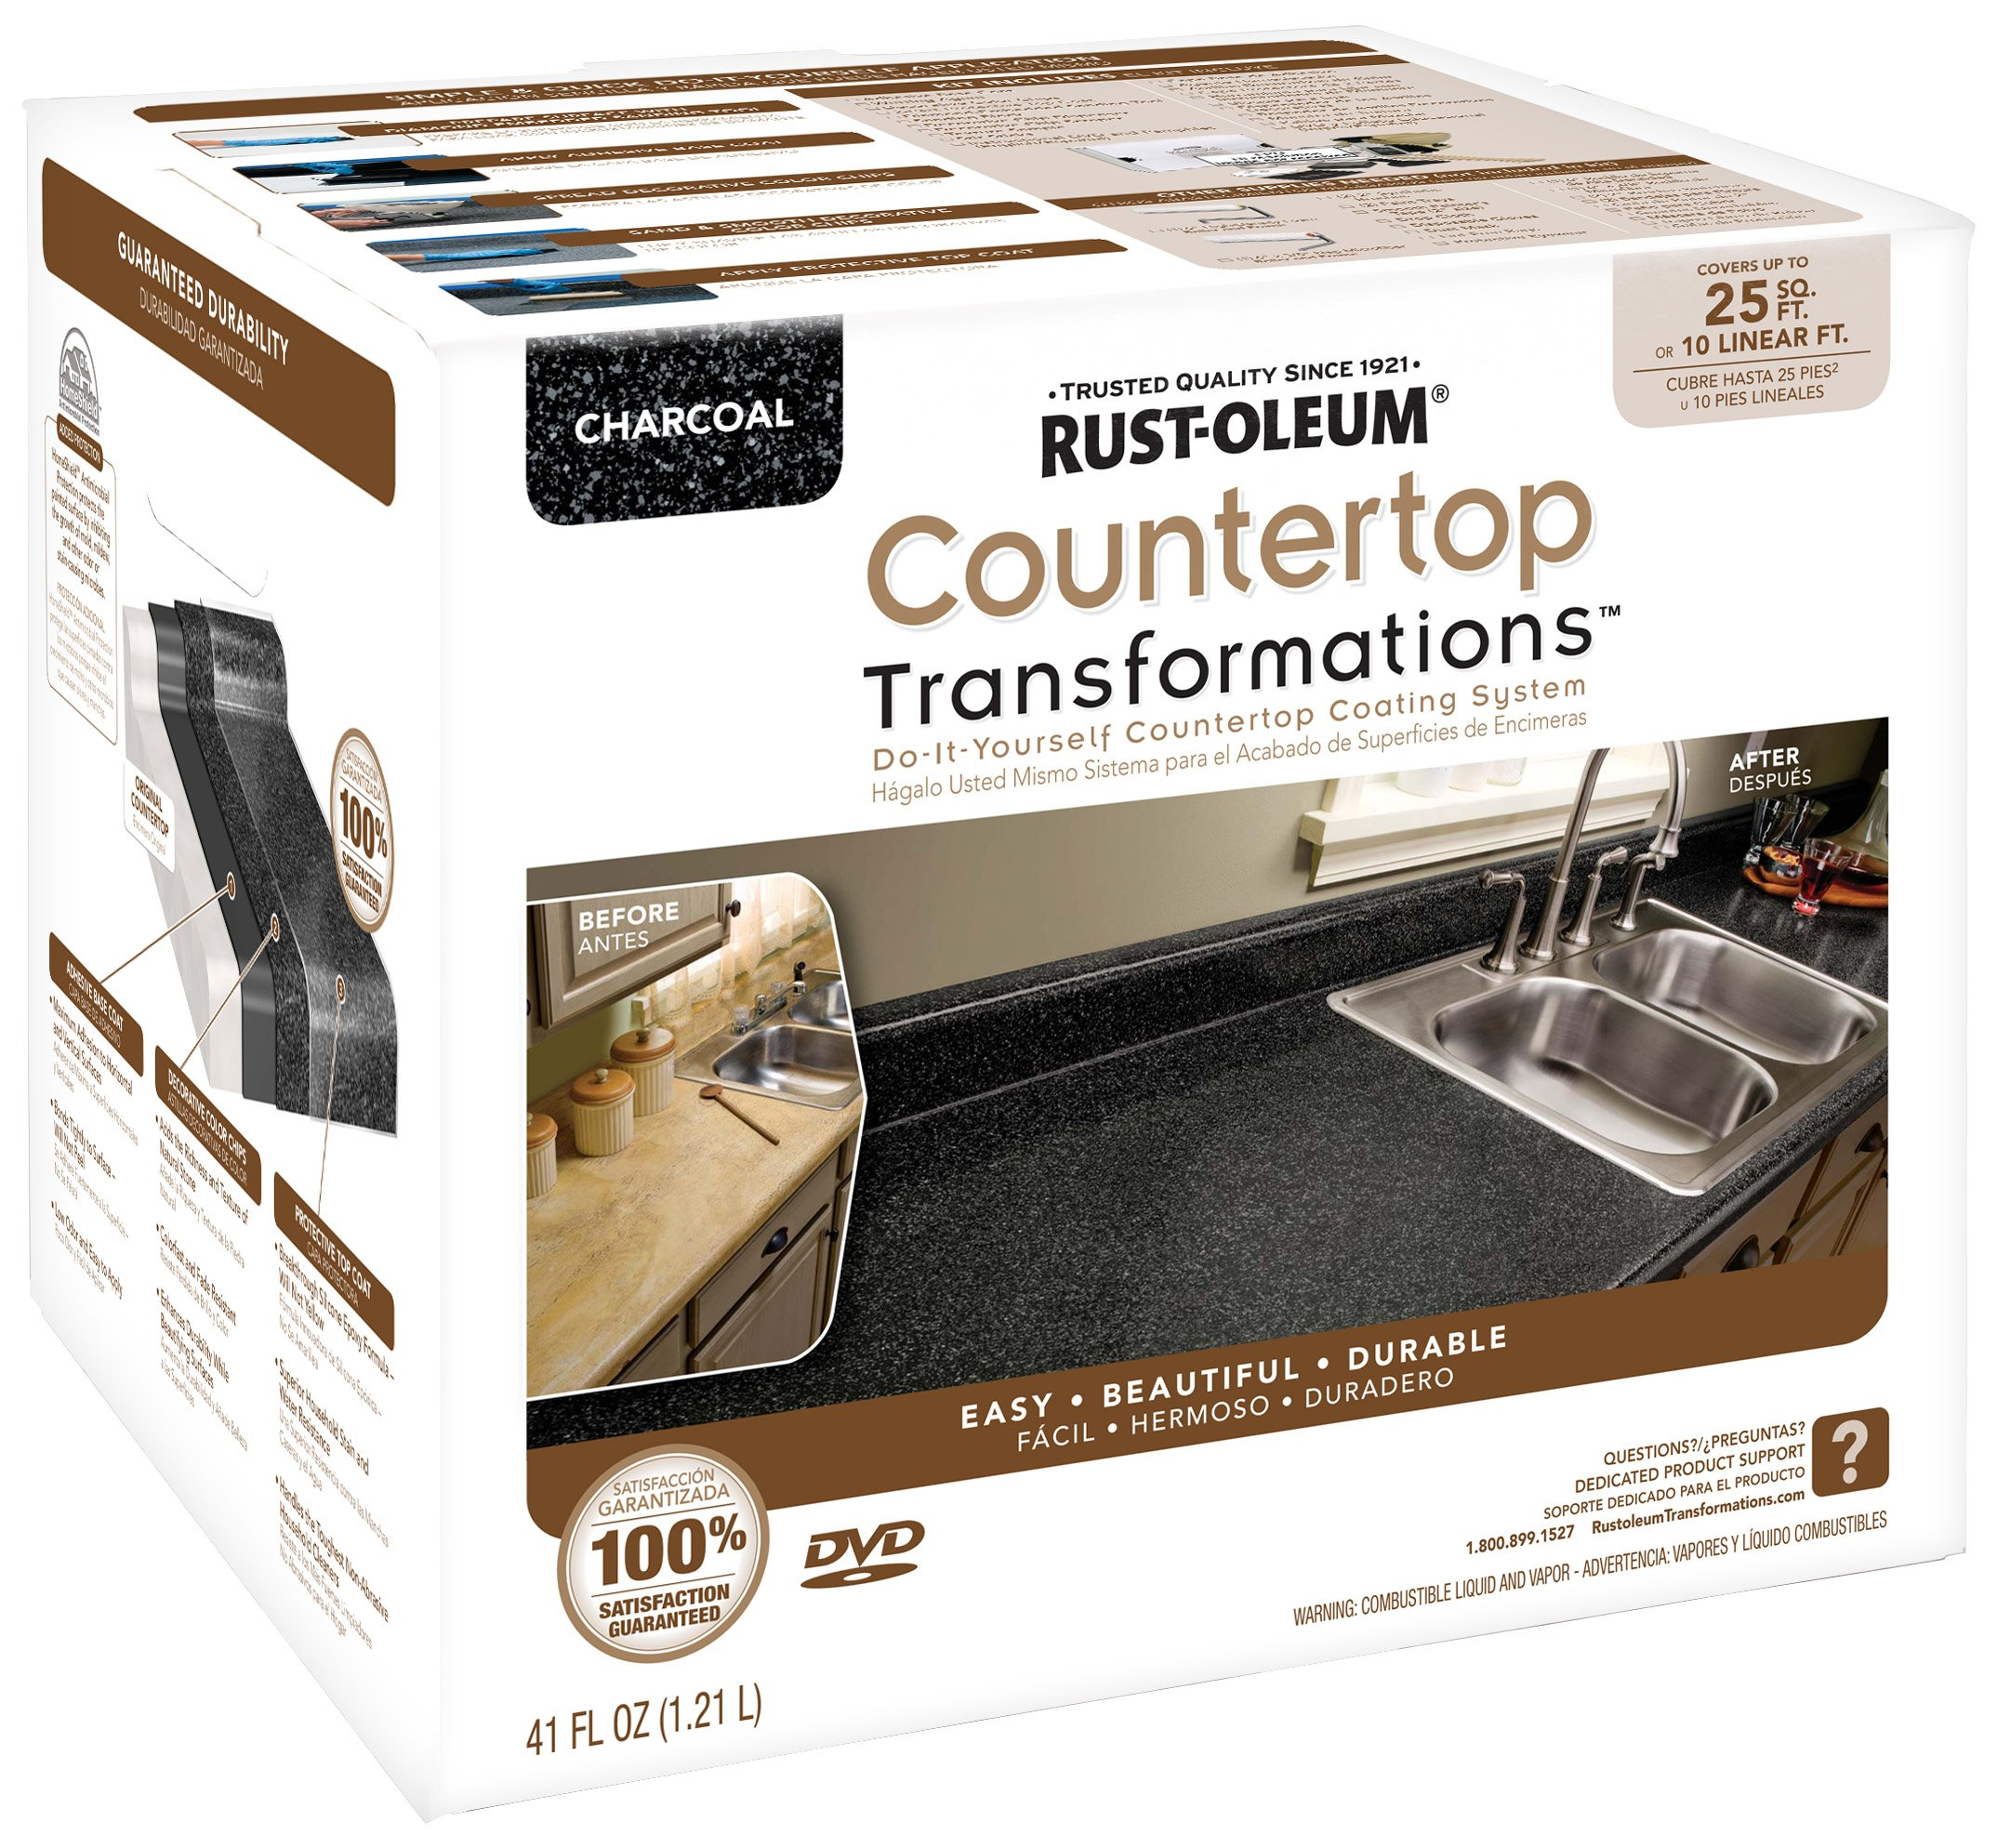 Rust-Oleum 258512 Counter Top Transformations, Small Kit, Charcoal by Rust-Oleum